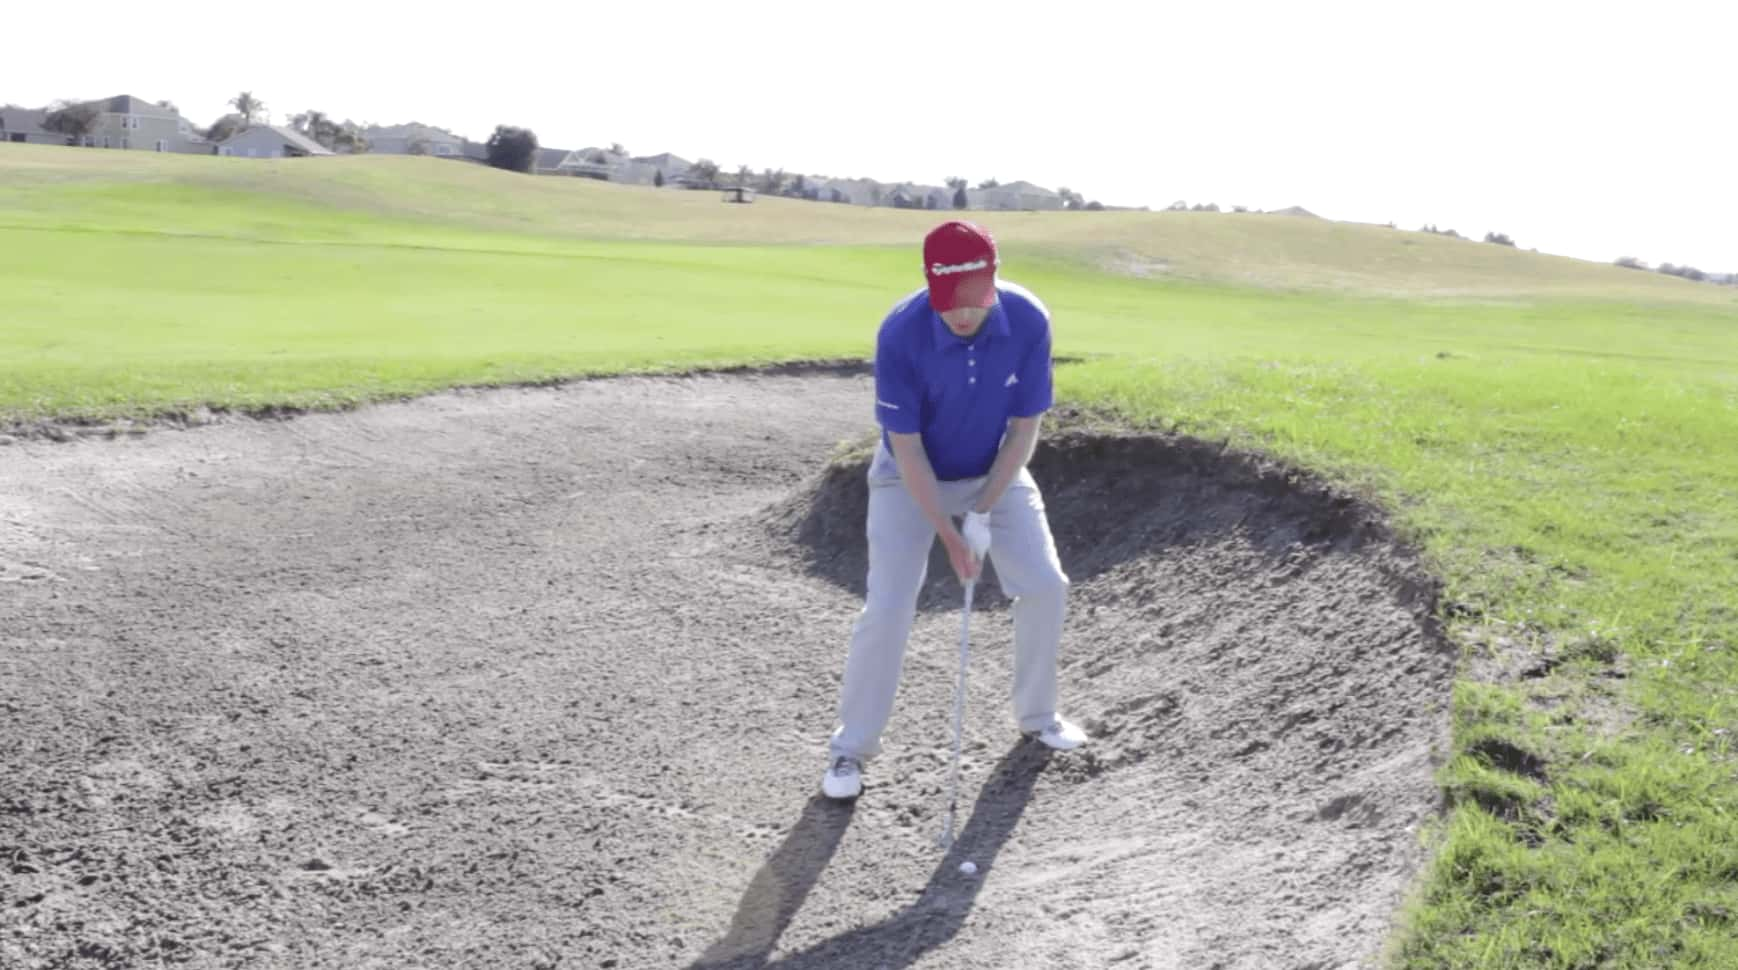 Plugged Bunker Shot - Stance